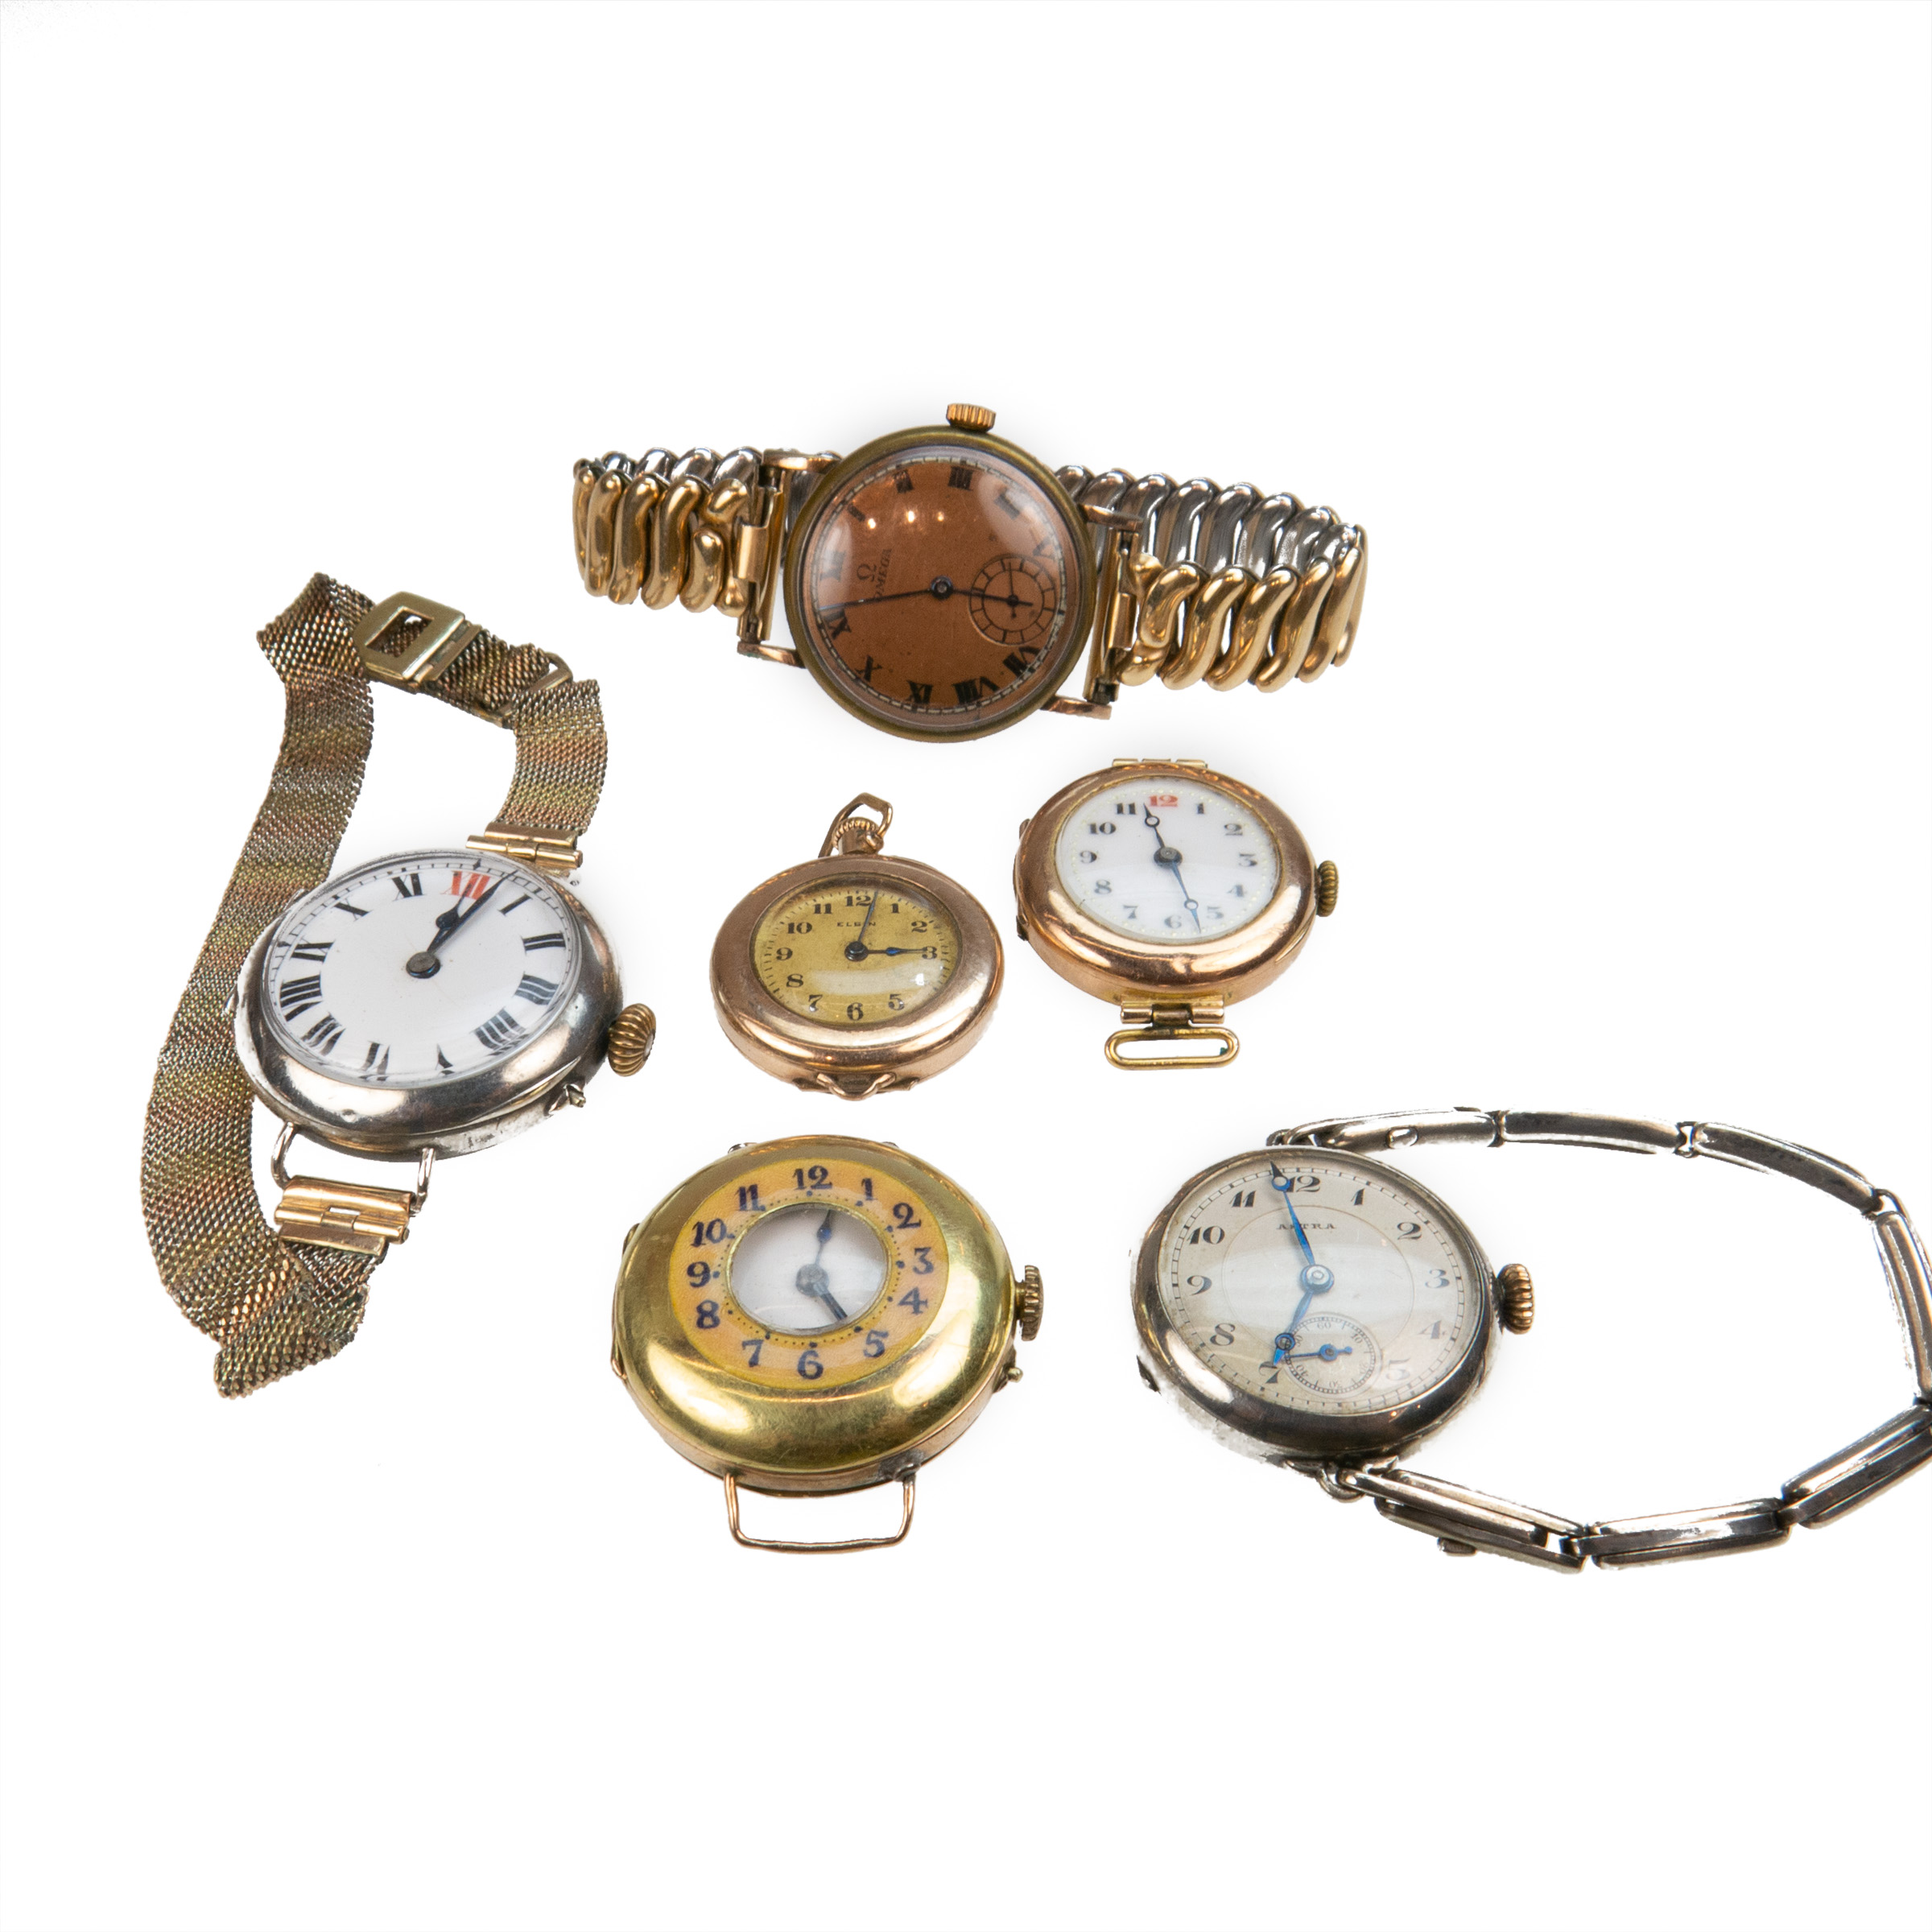 6 X Circa 1920's Wristwatches